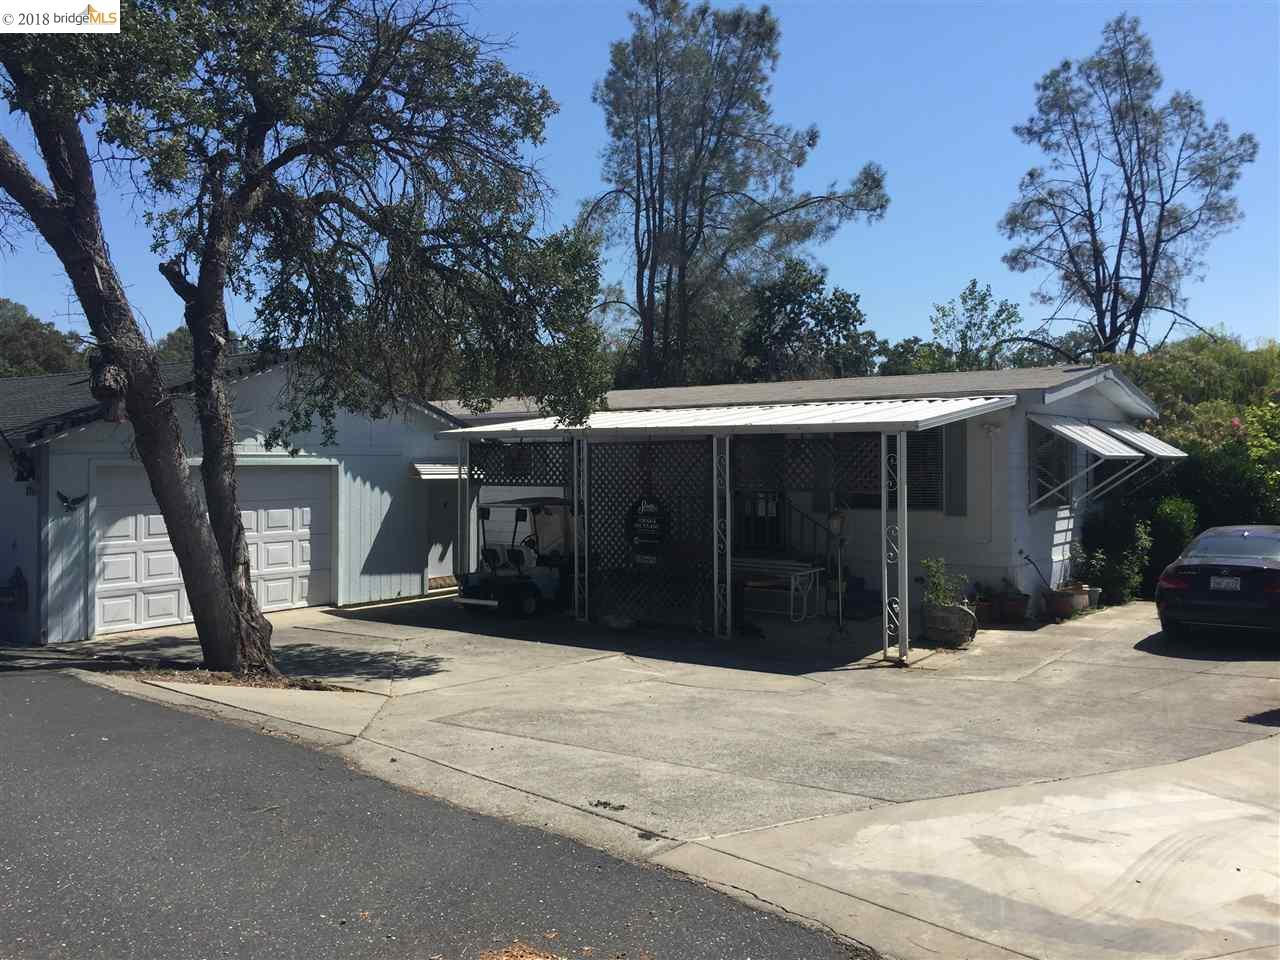 Single Family Home for Sale at 245 Rim Canyon PKWY 245 Rim Canyon PKWY Oroville, California 95966 United States